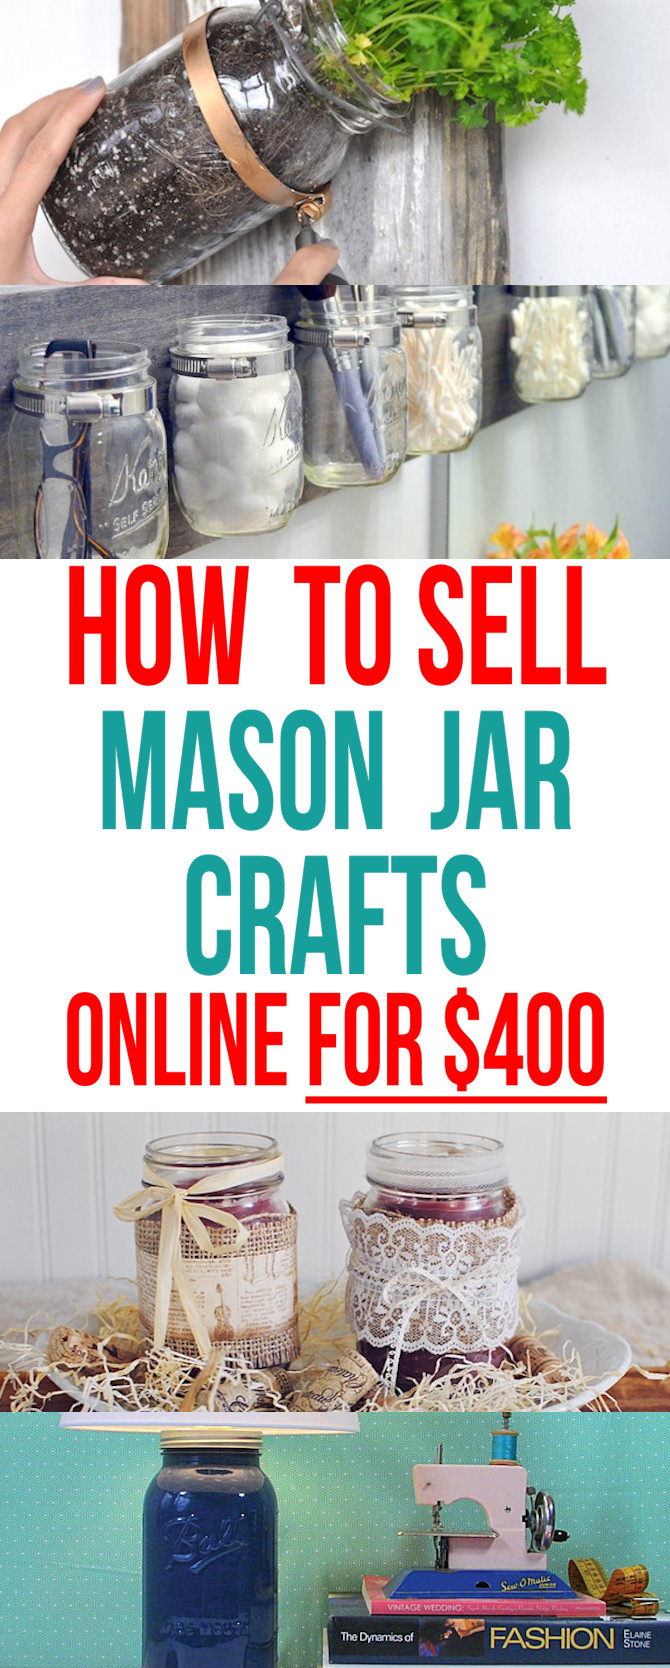 How To Sell Mason Jar Crafts Online